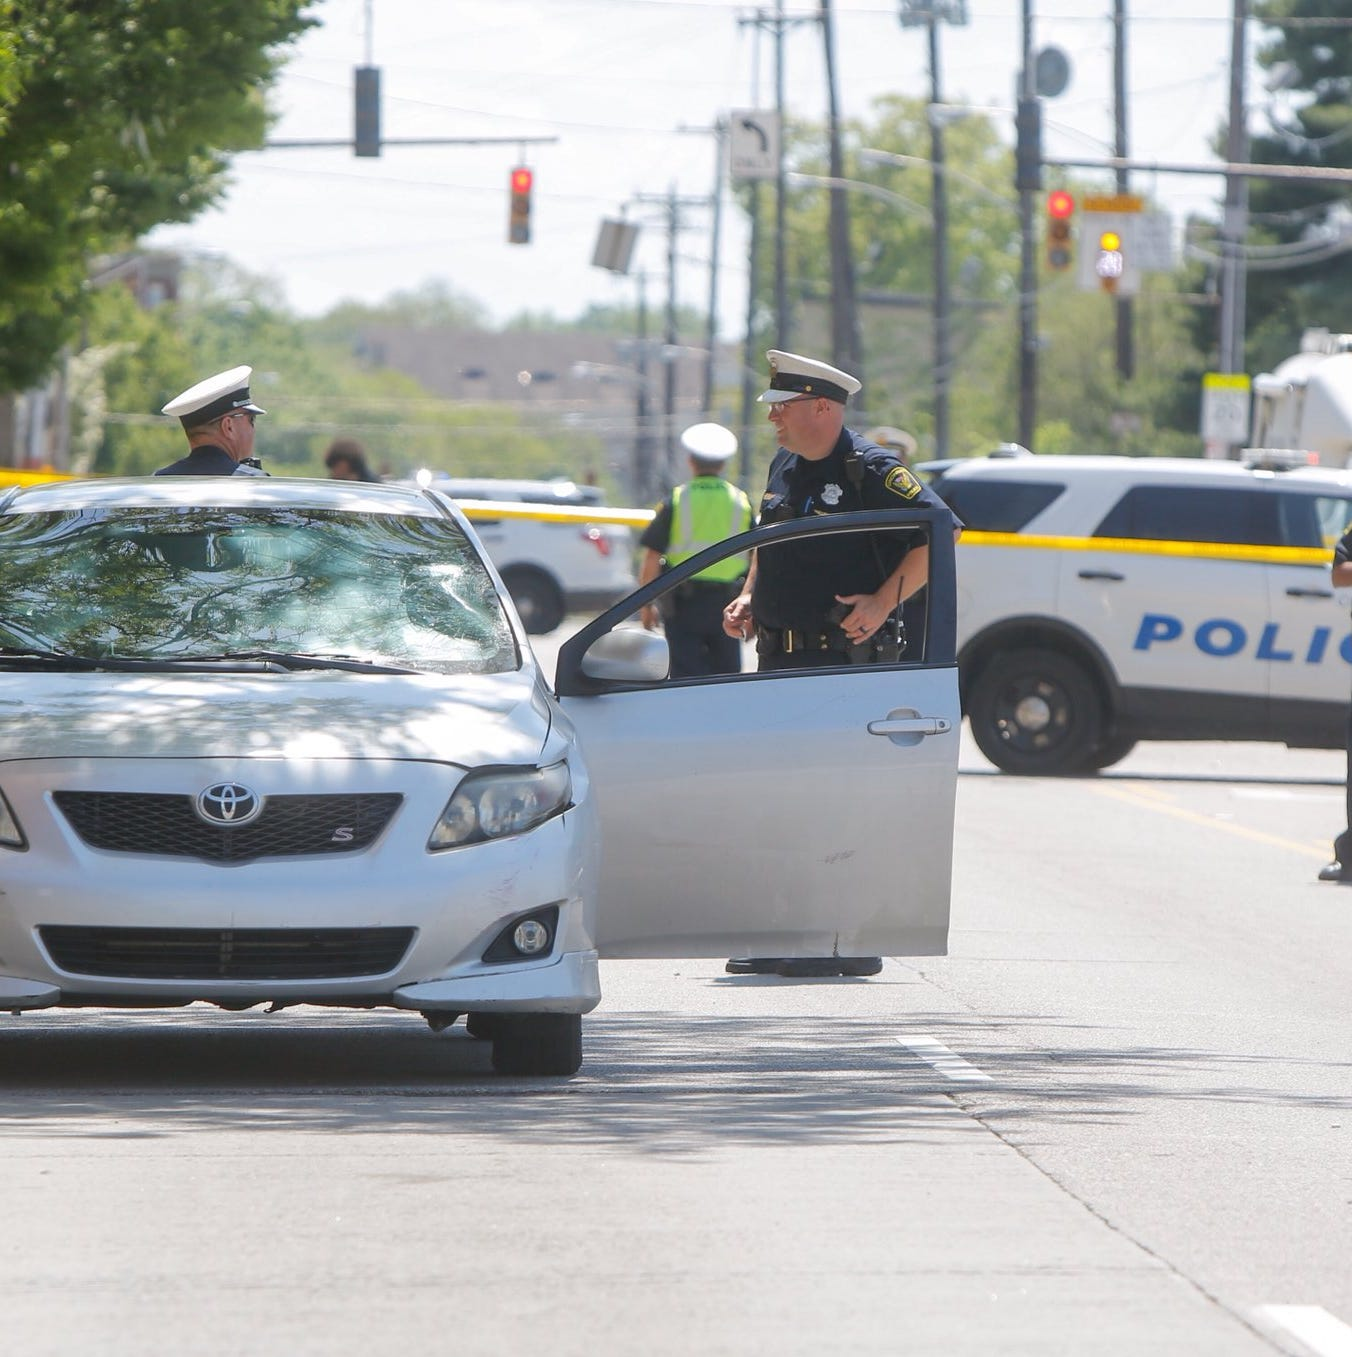 Opinion: Fatalities climb as few changes are made to calm traffic